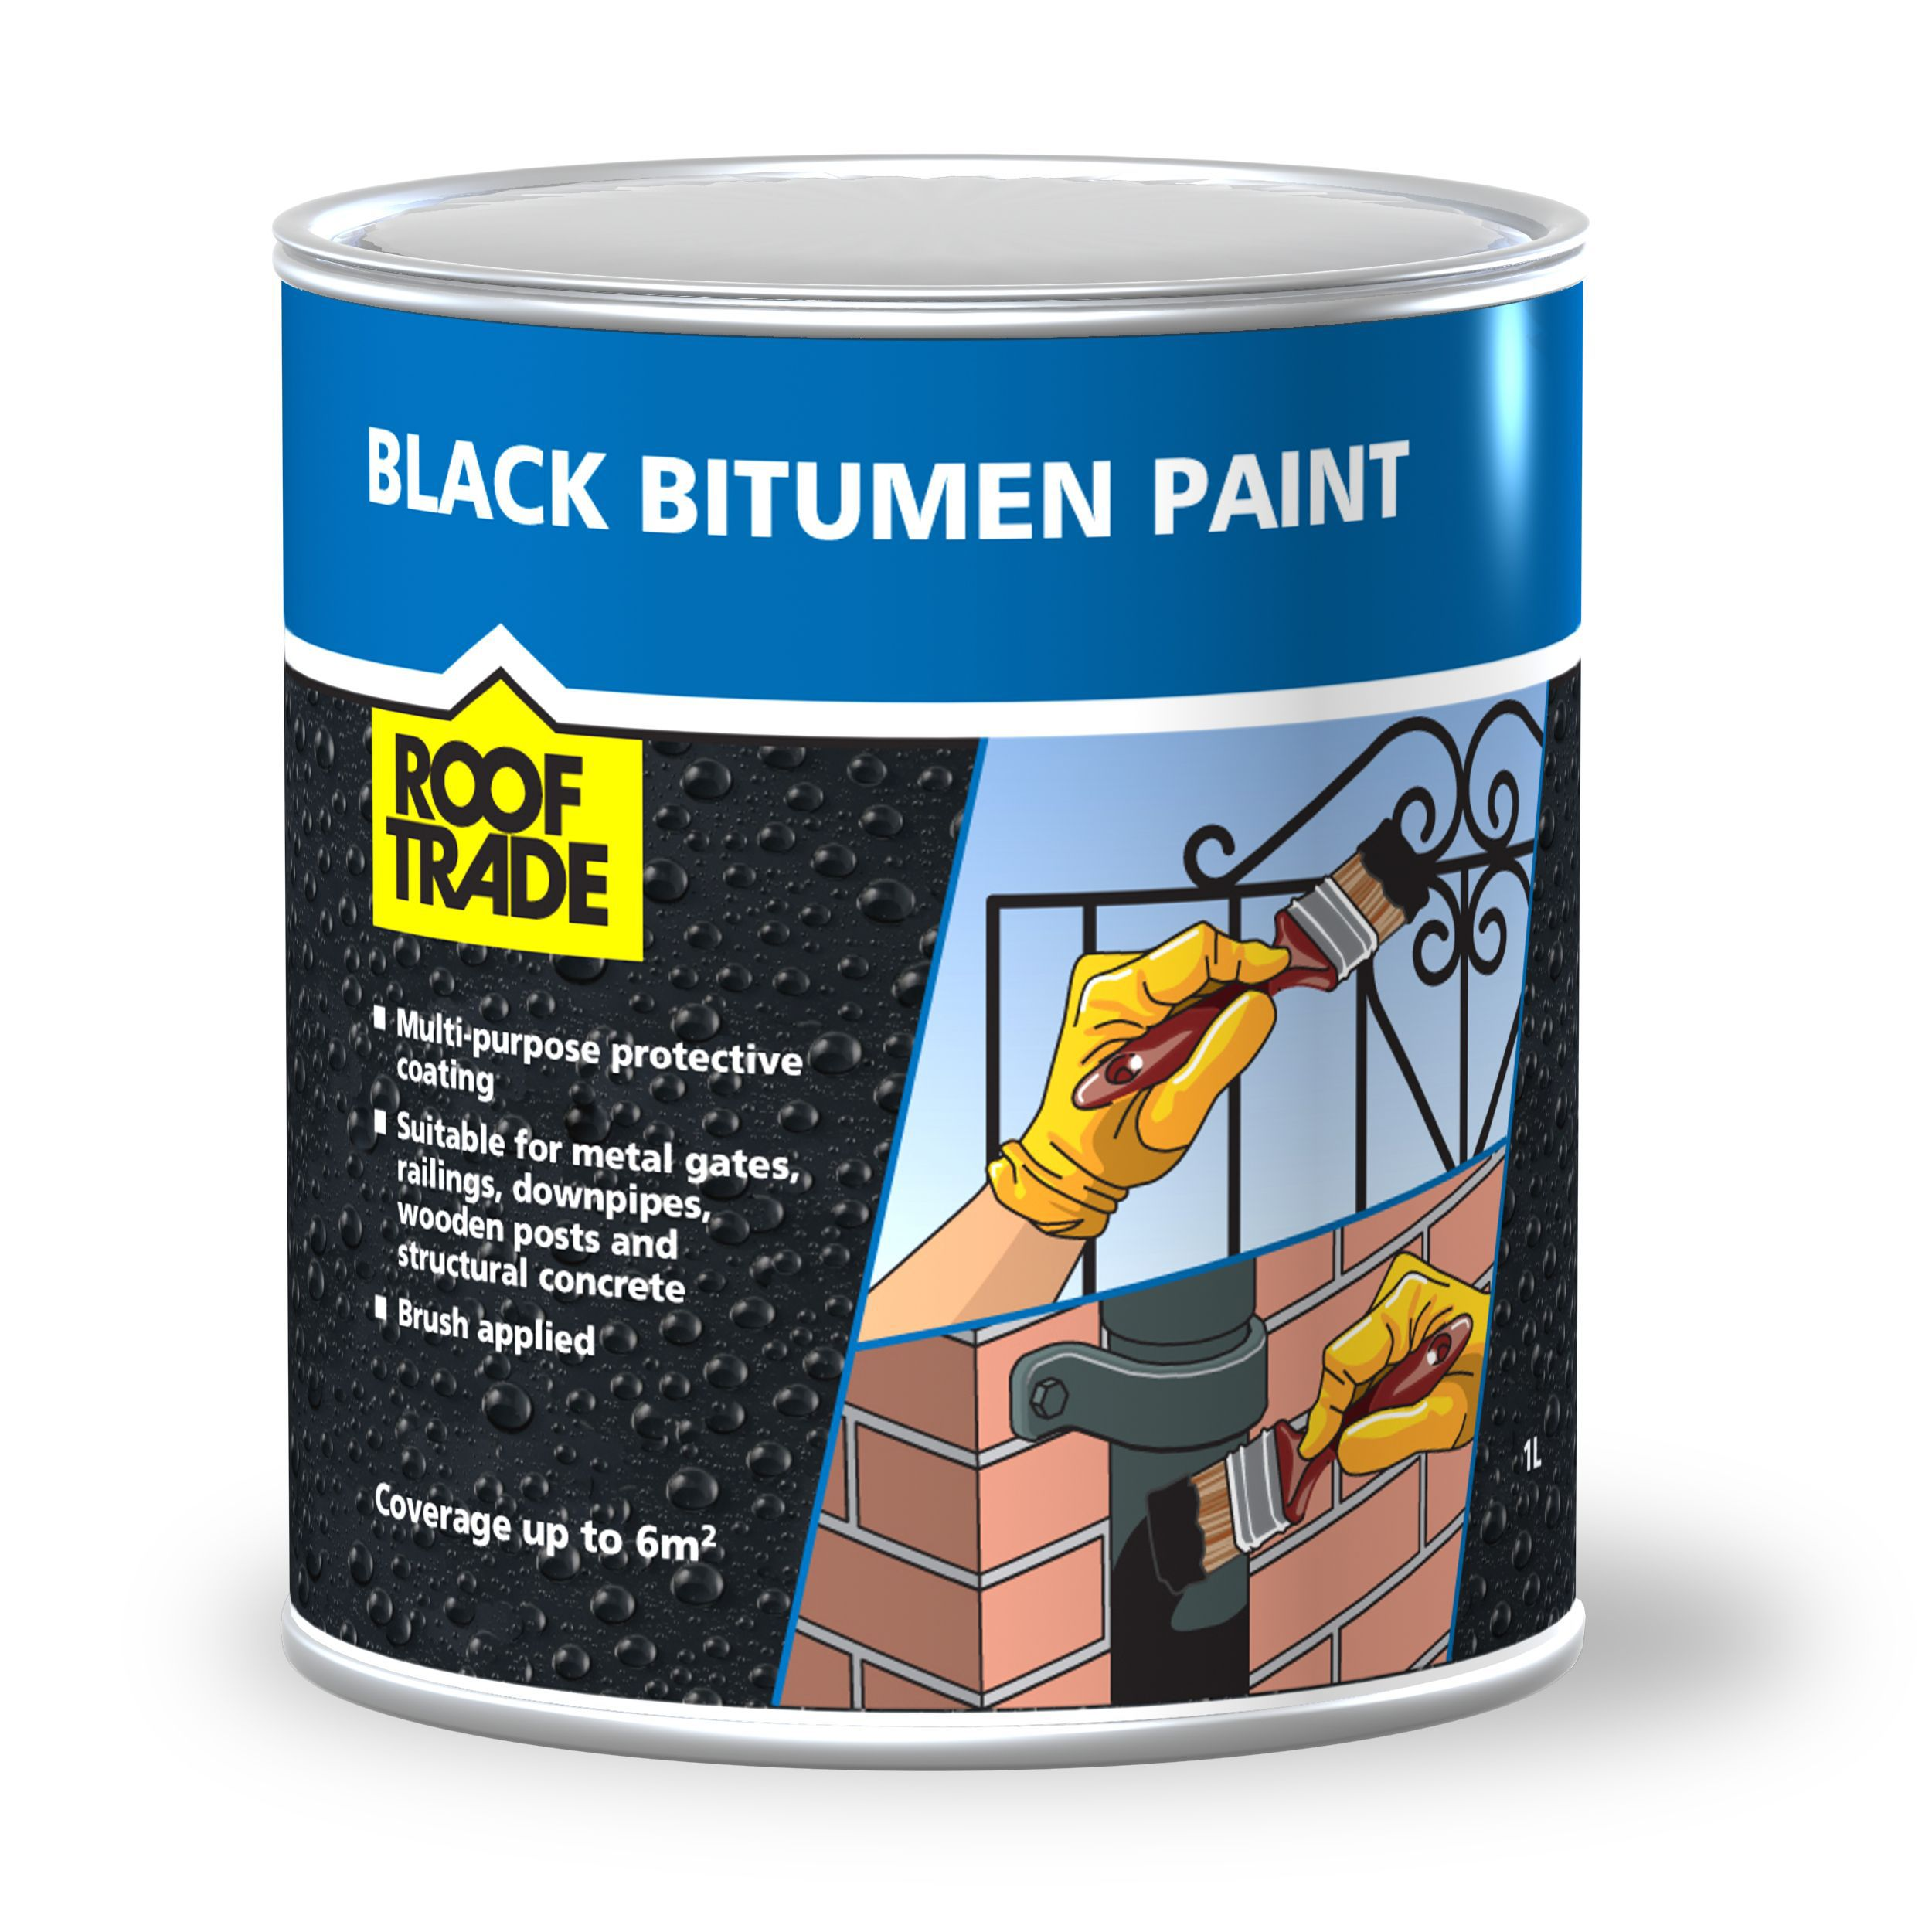 Rooftrade Black Bitumen Paint 1l Departments Diy At B Q - Home Depot Garden Furniture Clearance